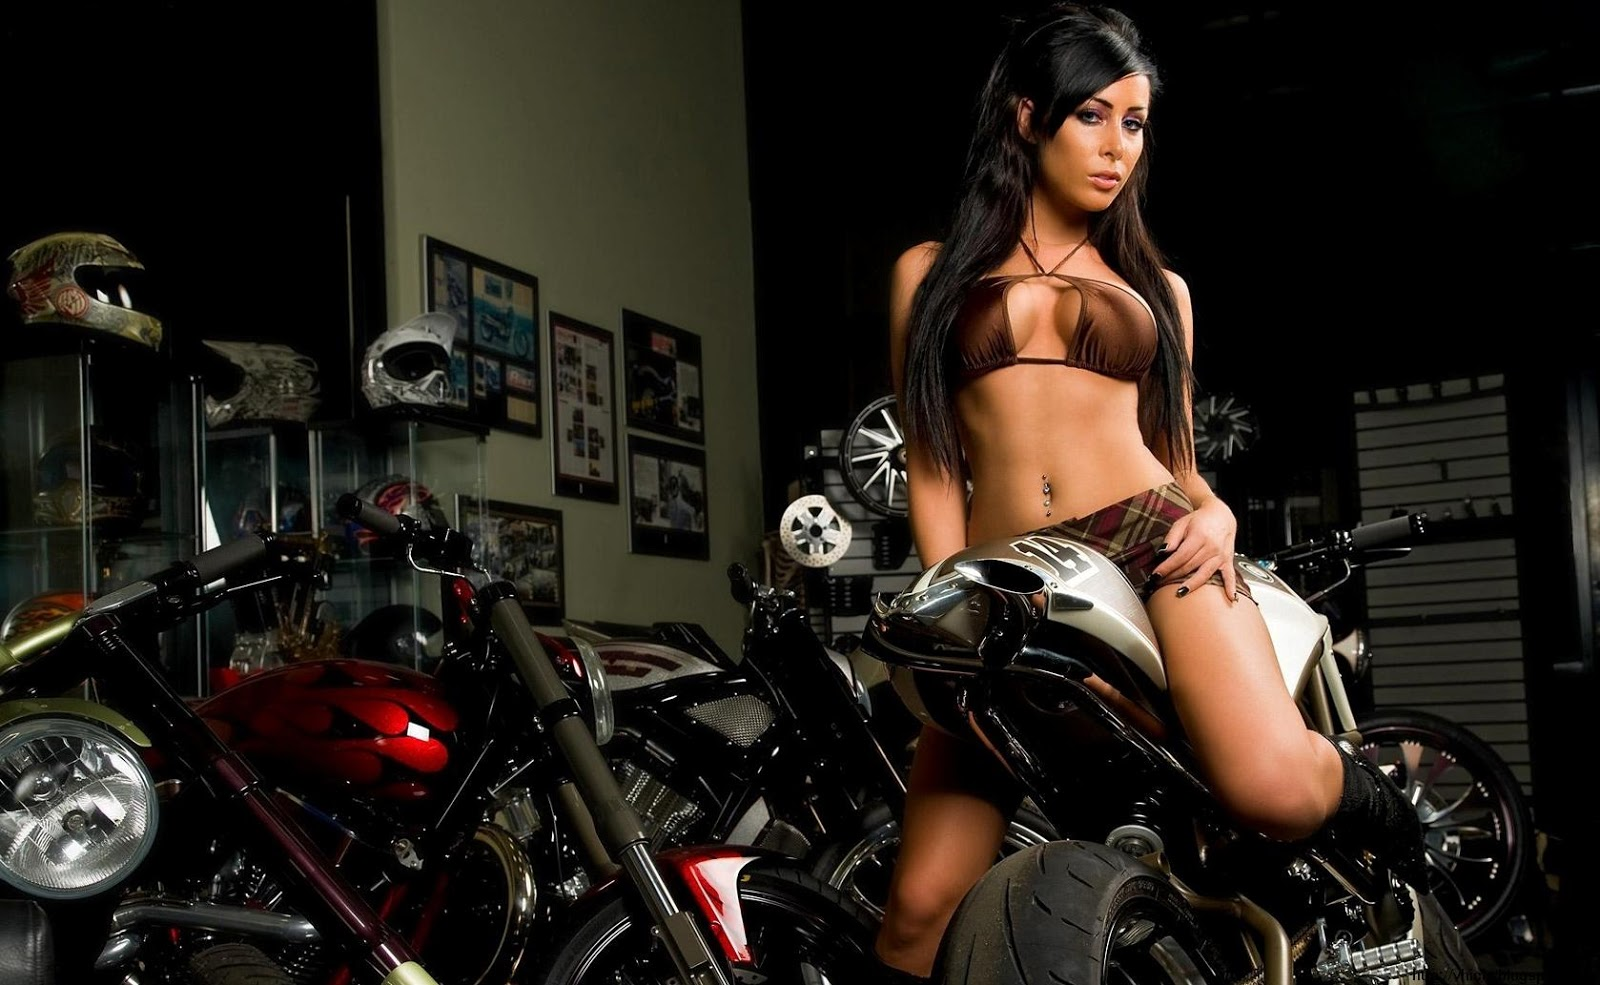 With Naked girl on hot motorbike join